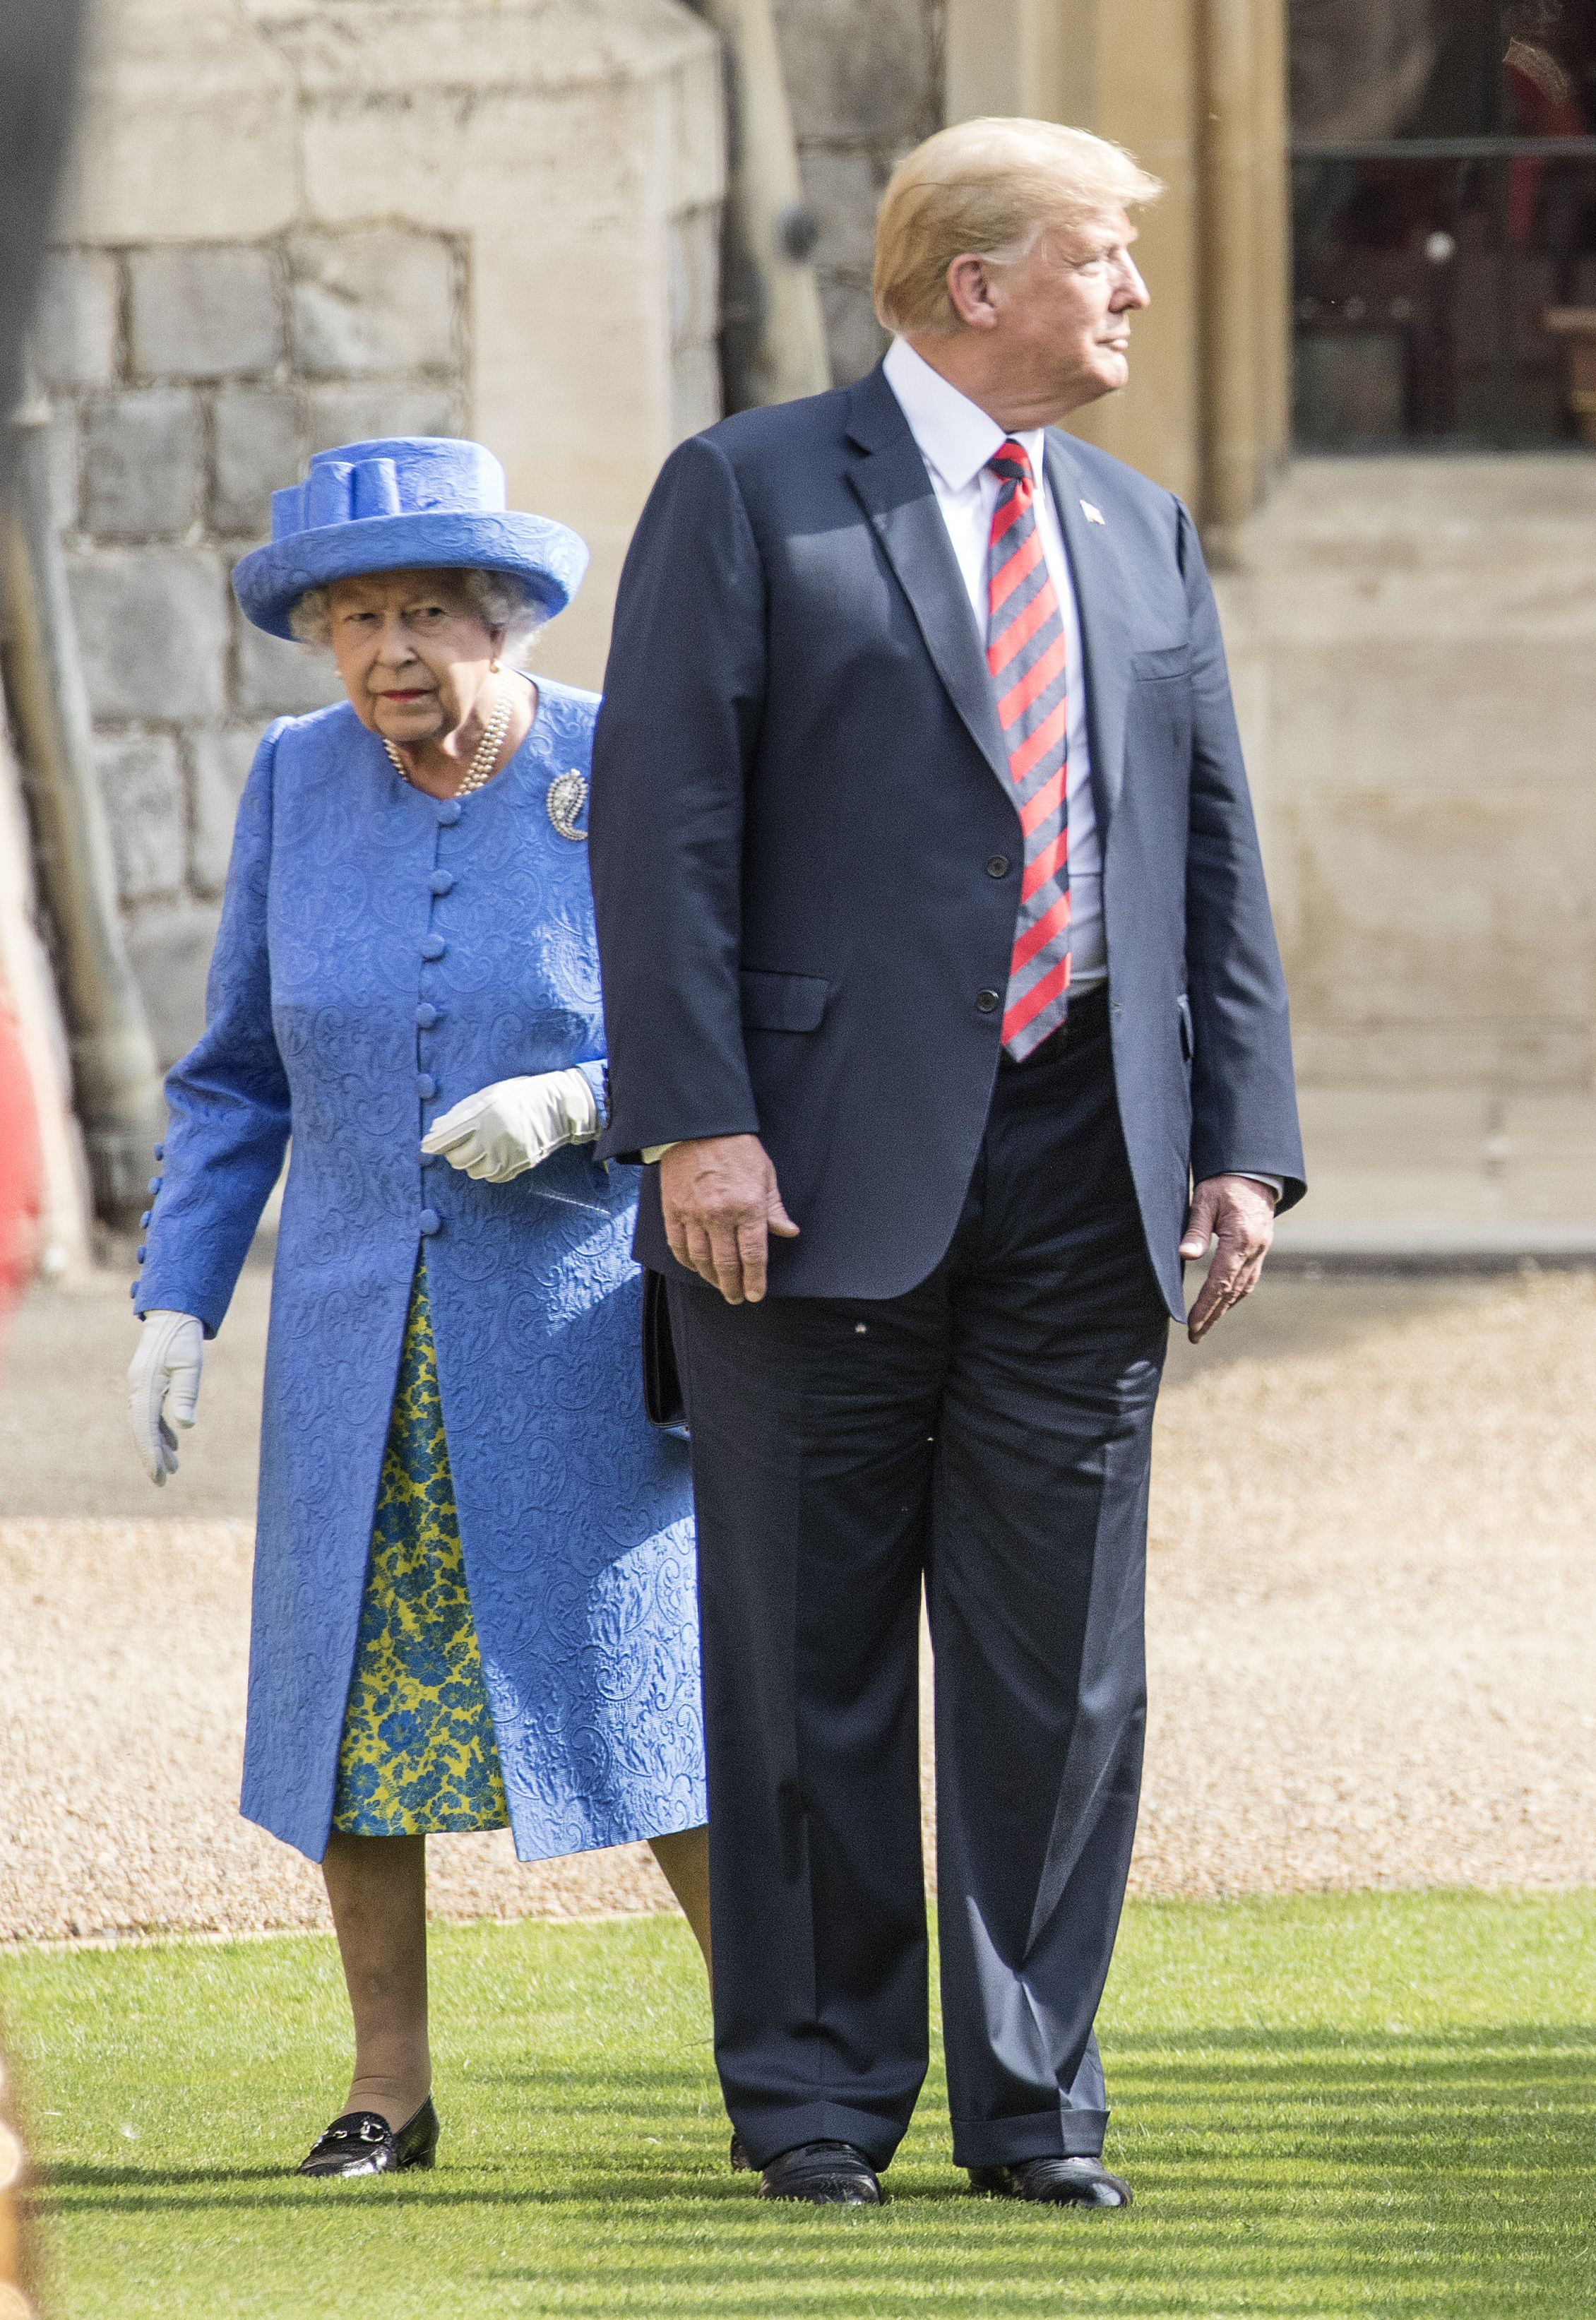 Did the Queen snub Donald Trump through her brooches?